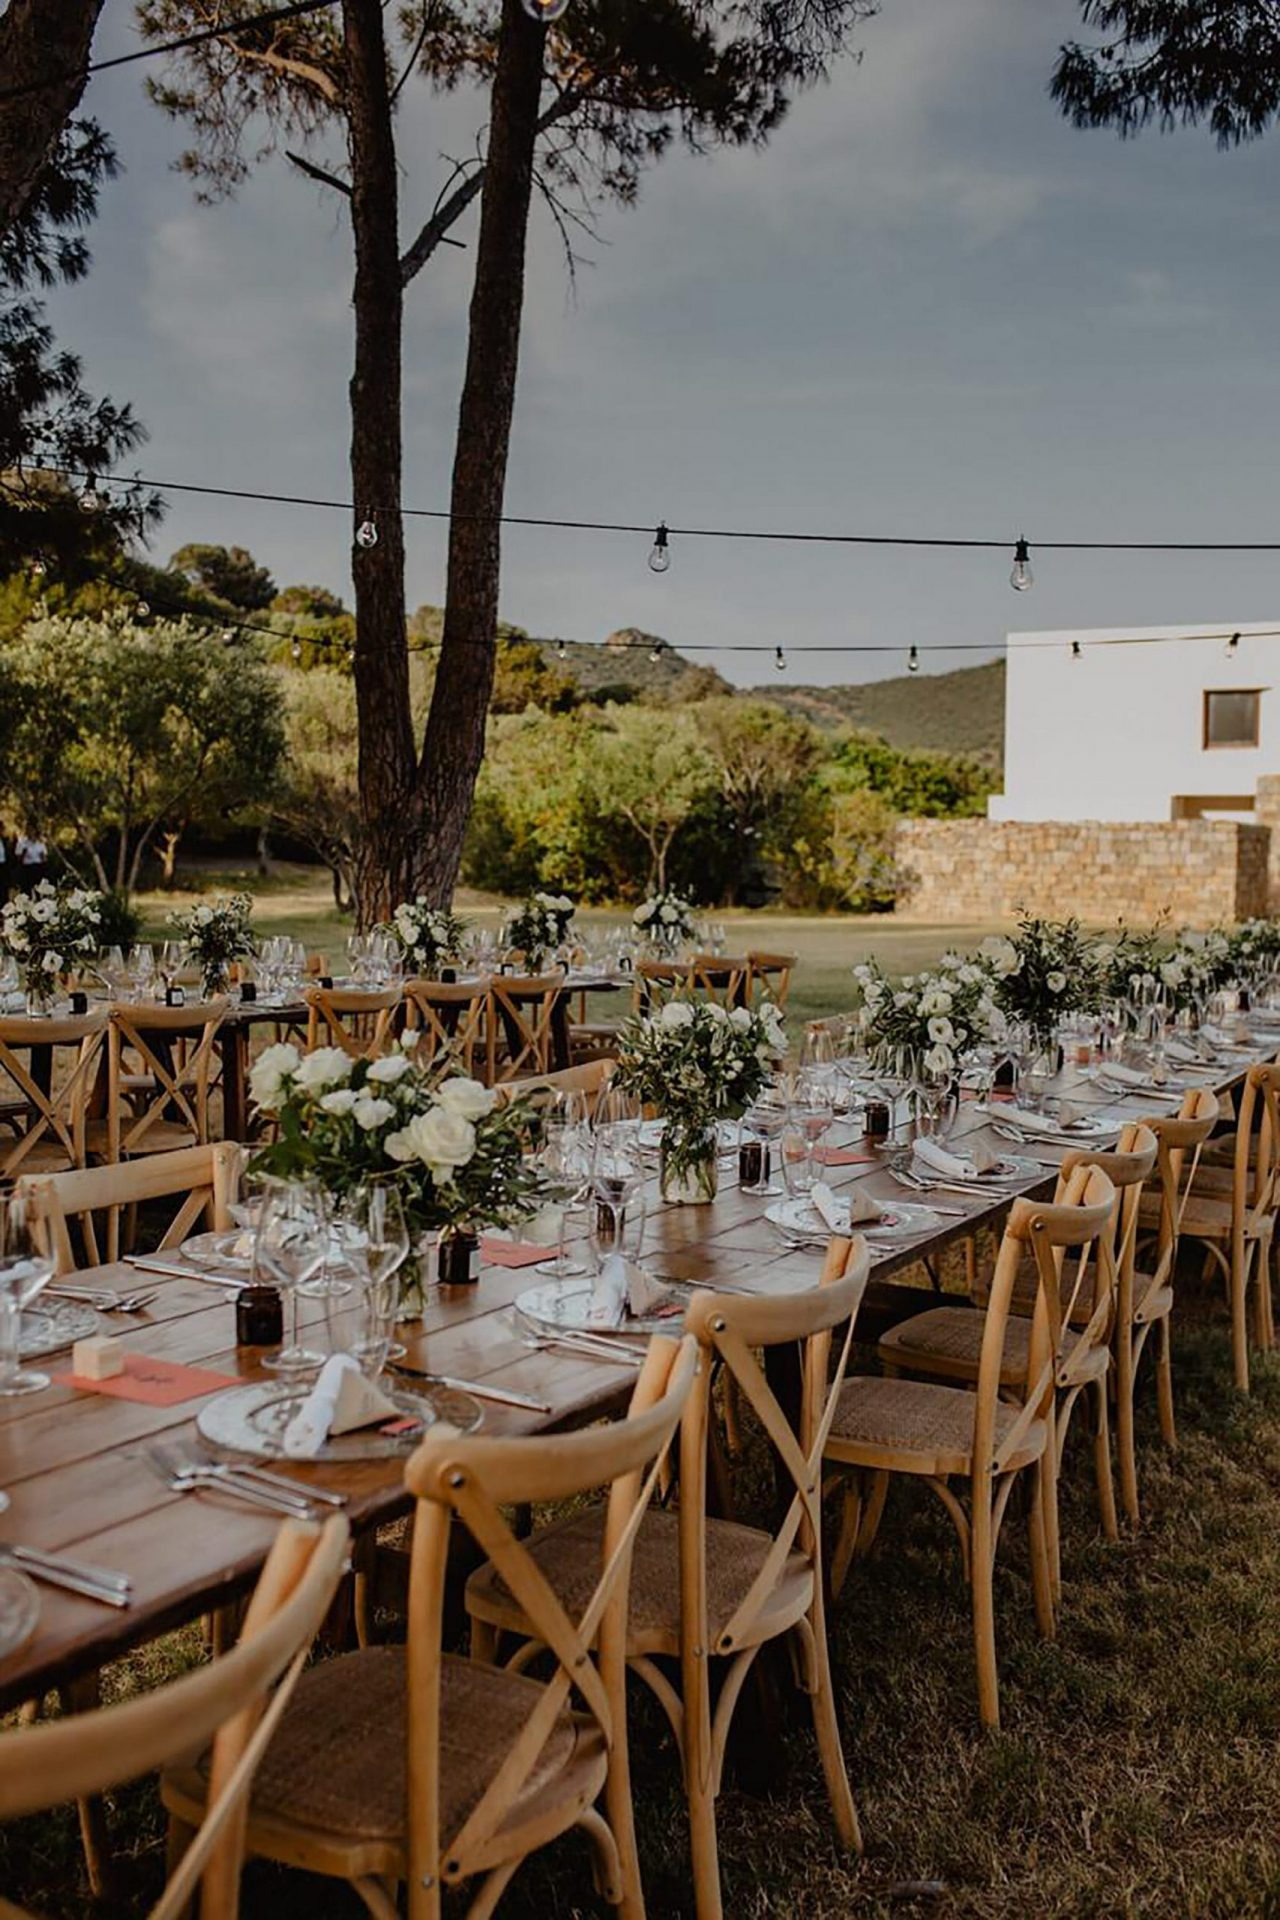 Luca and Delphine, natural wedding reception